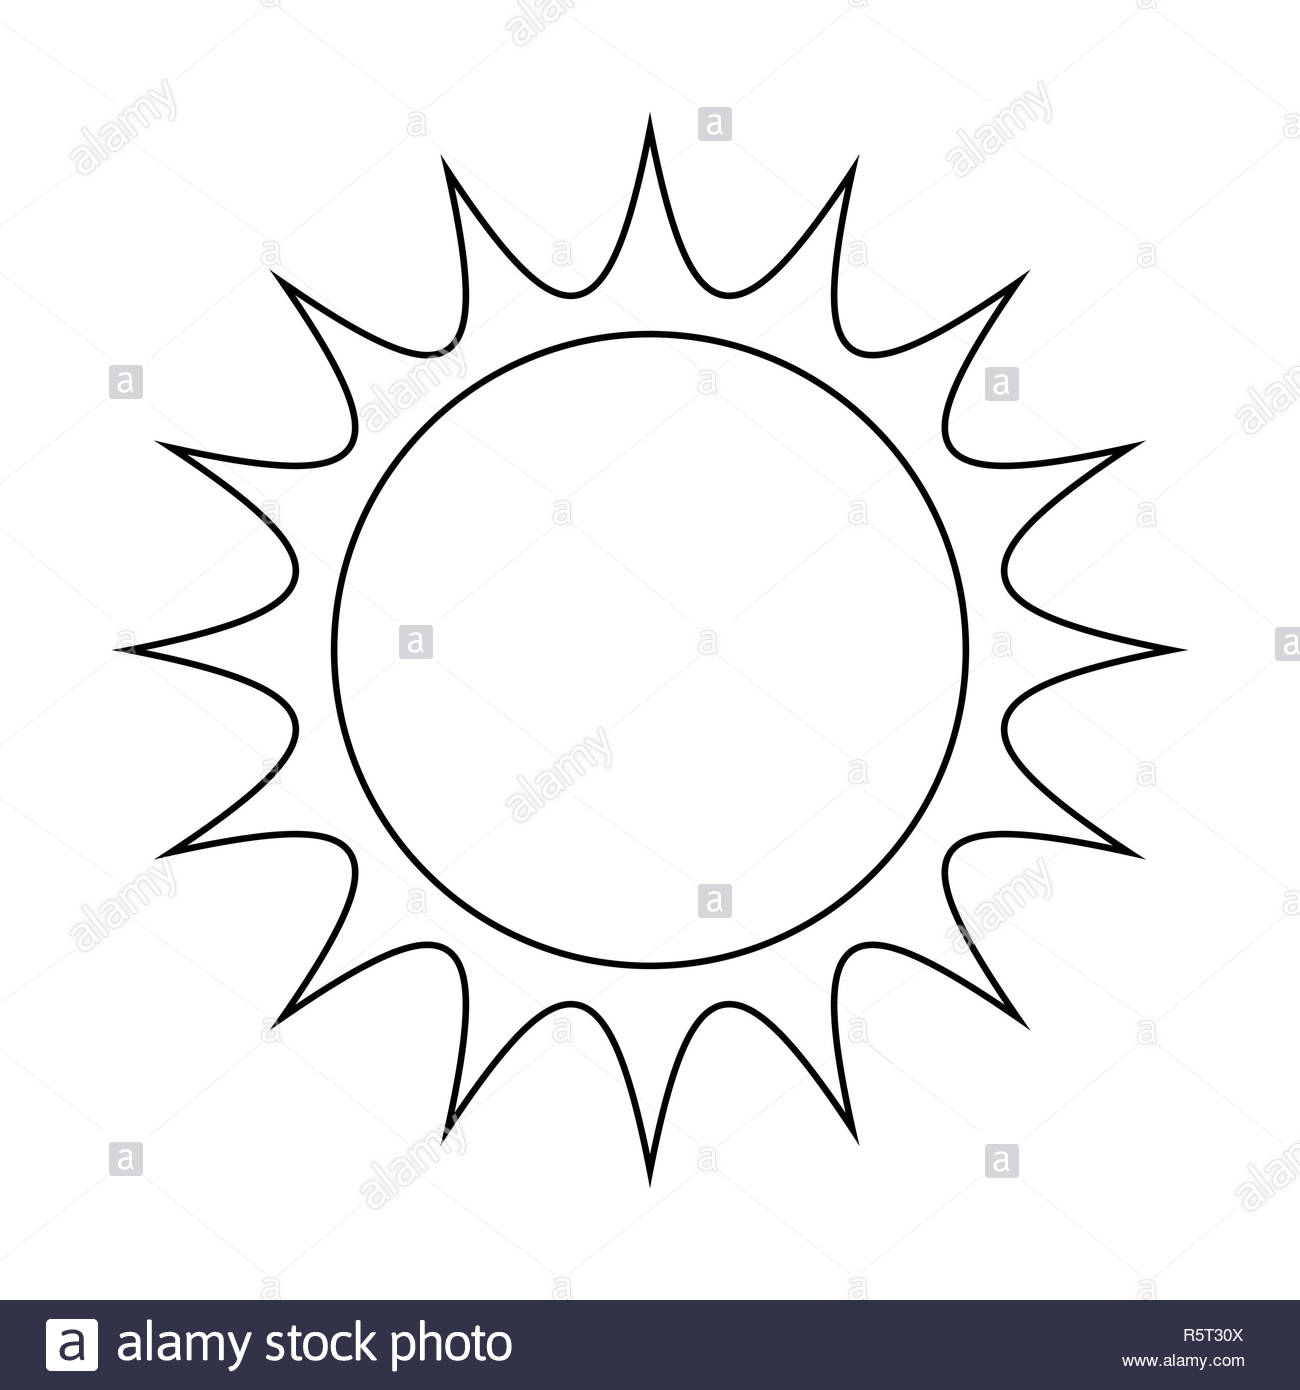 Hot Sun Clipart Black and White Stock Photos & Images.